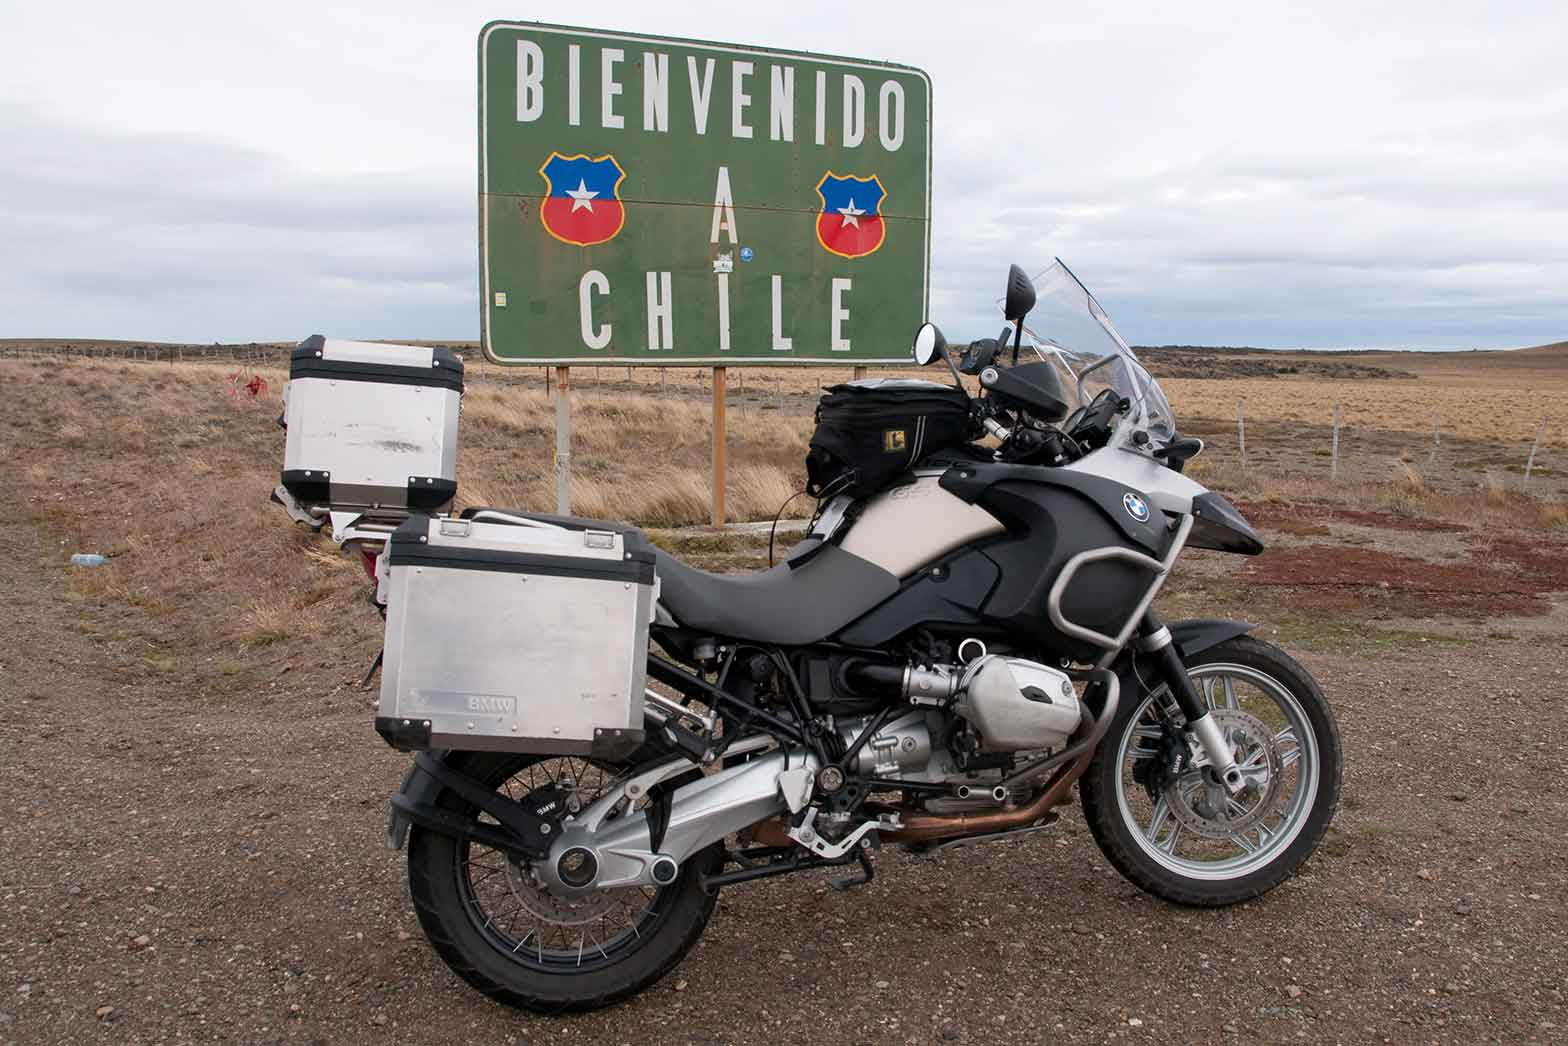 Chile border crossing